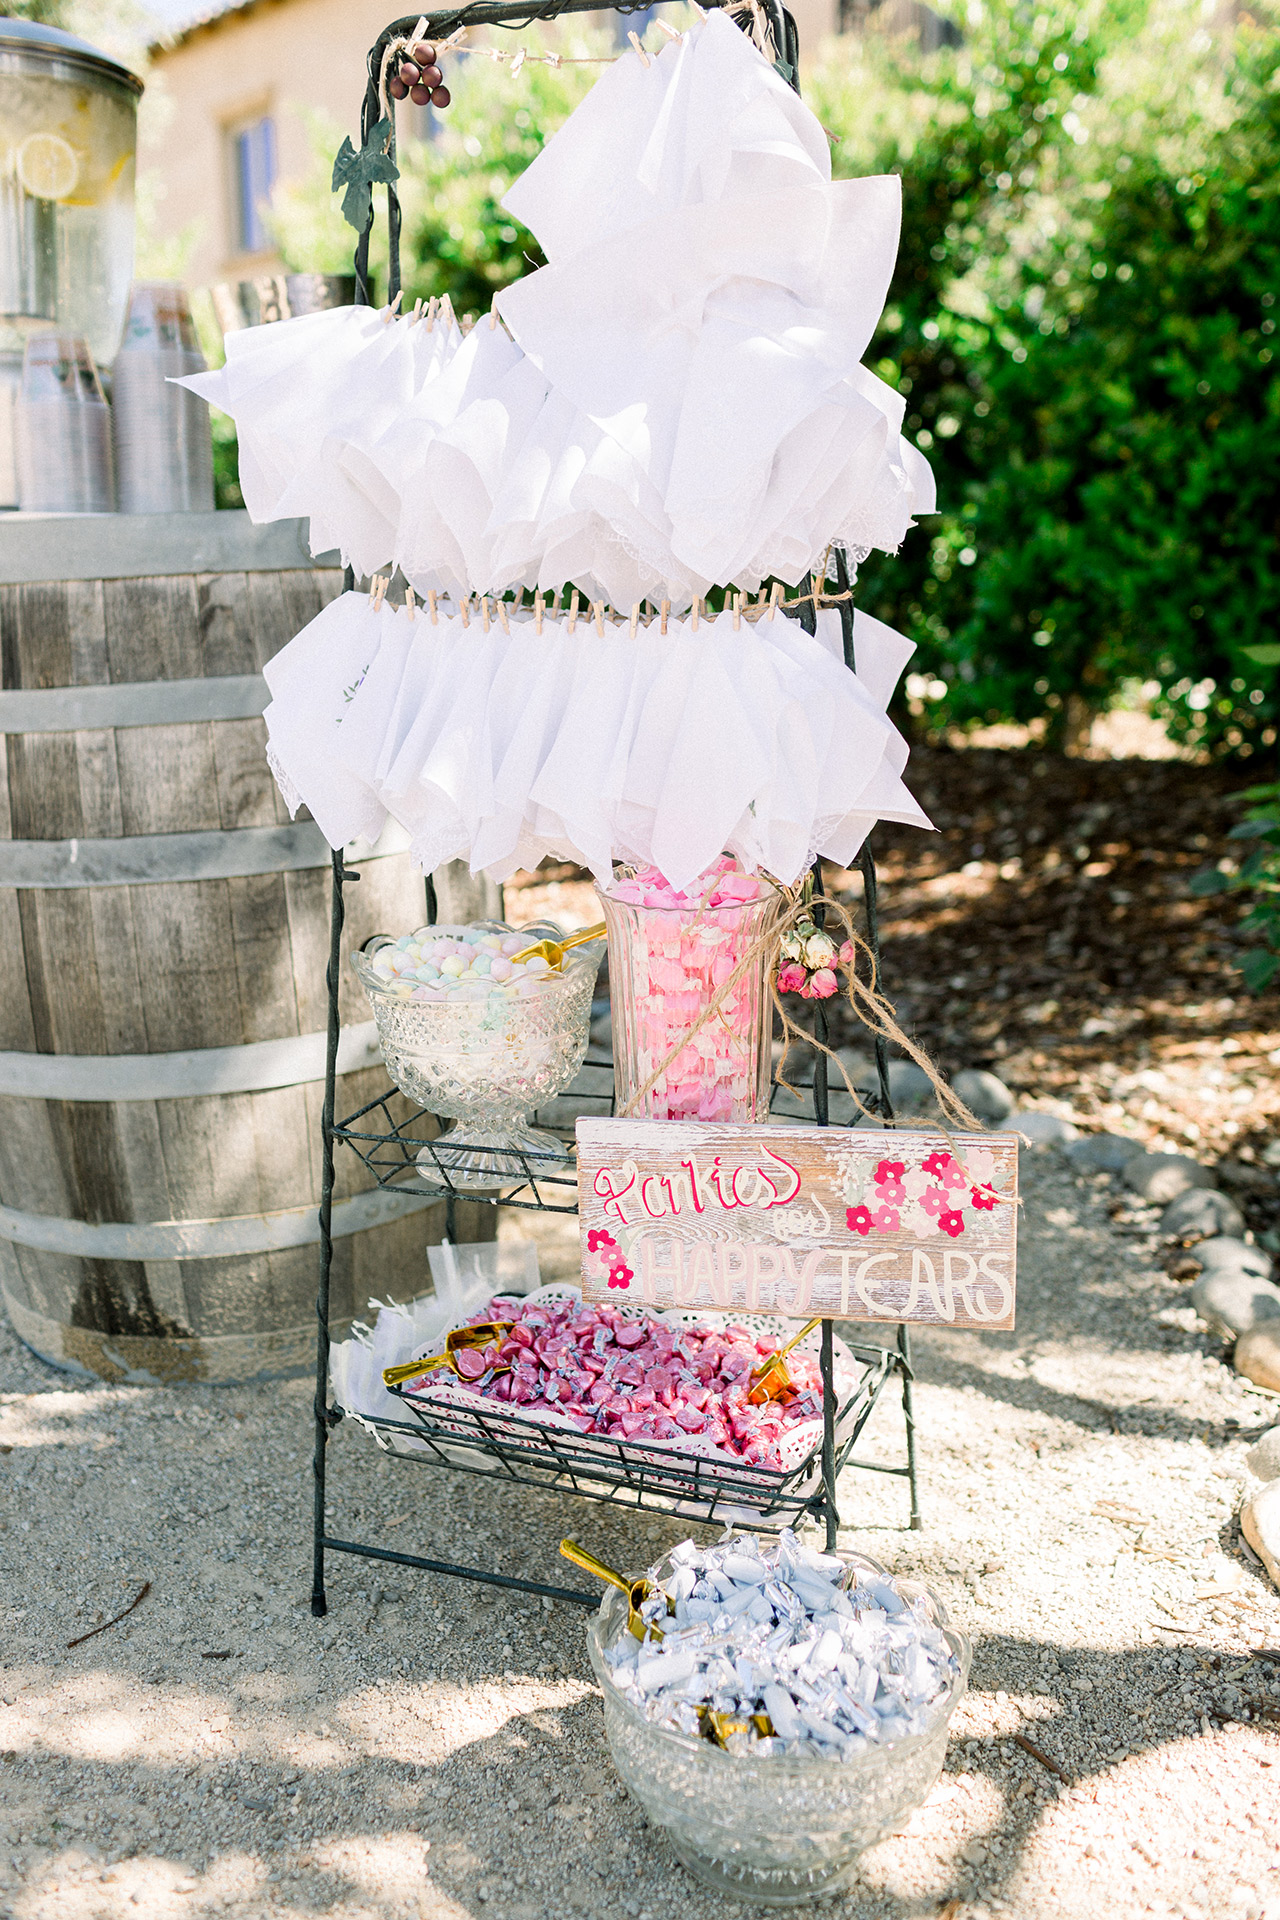 DIY handkerchief candy display outdoors